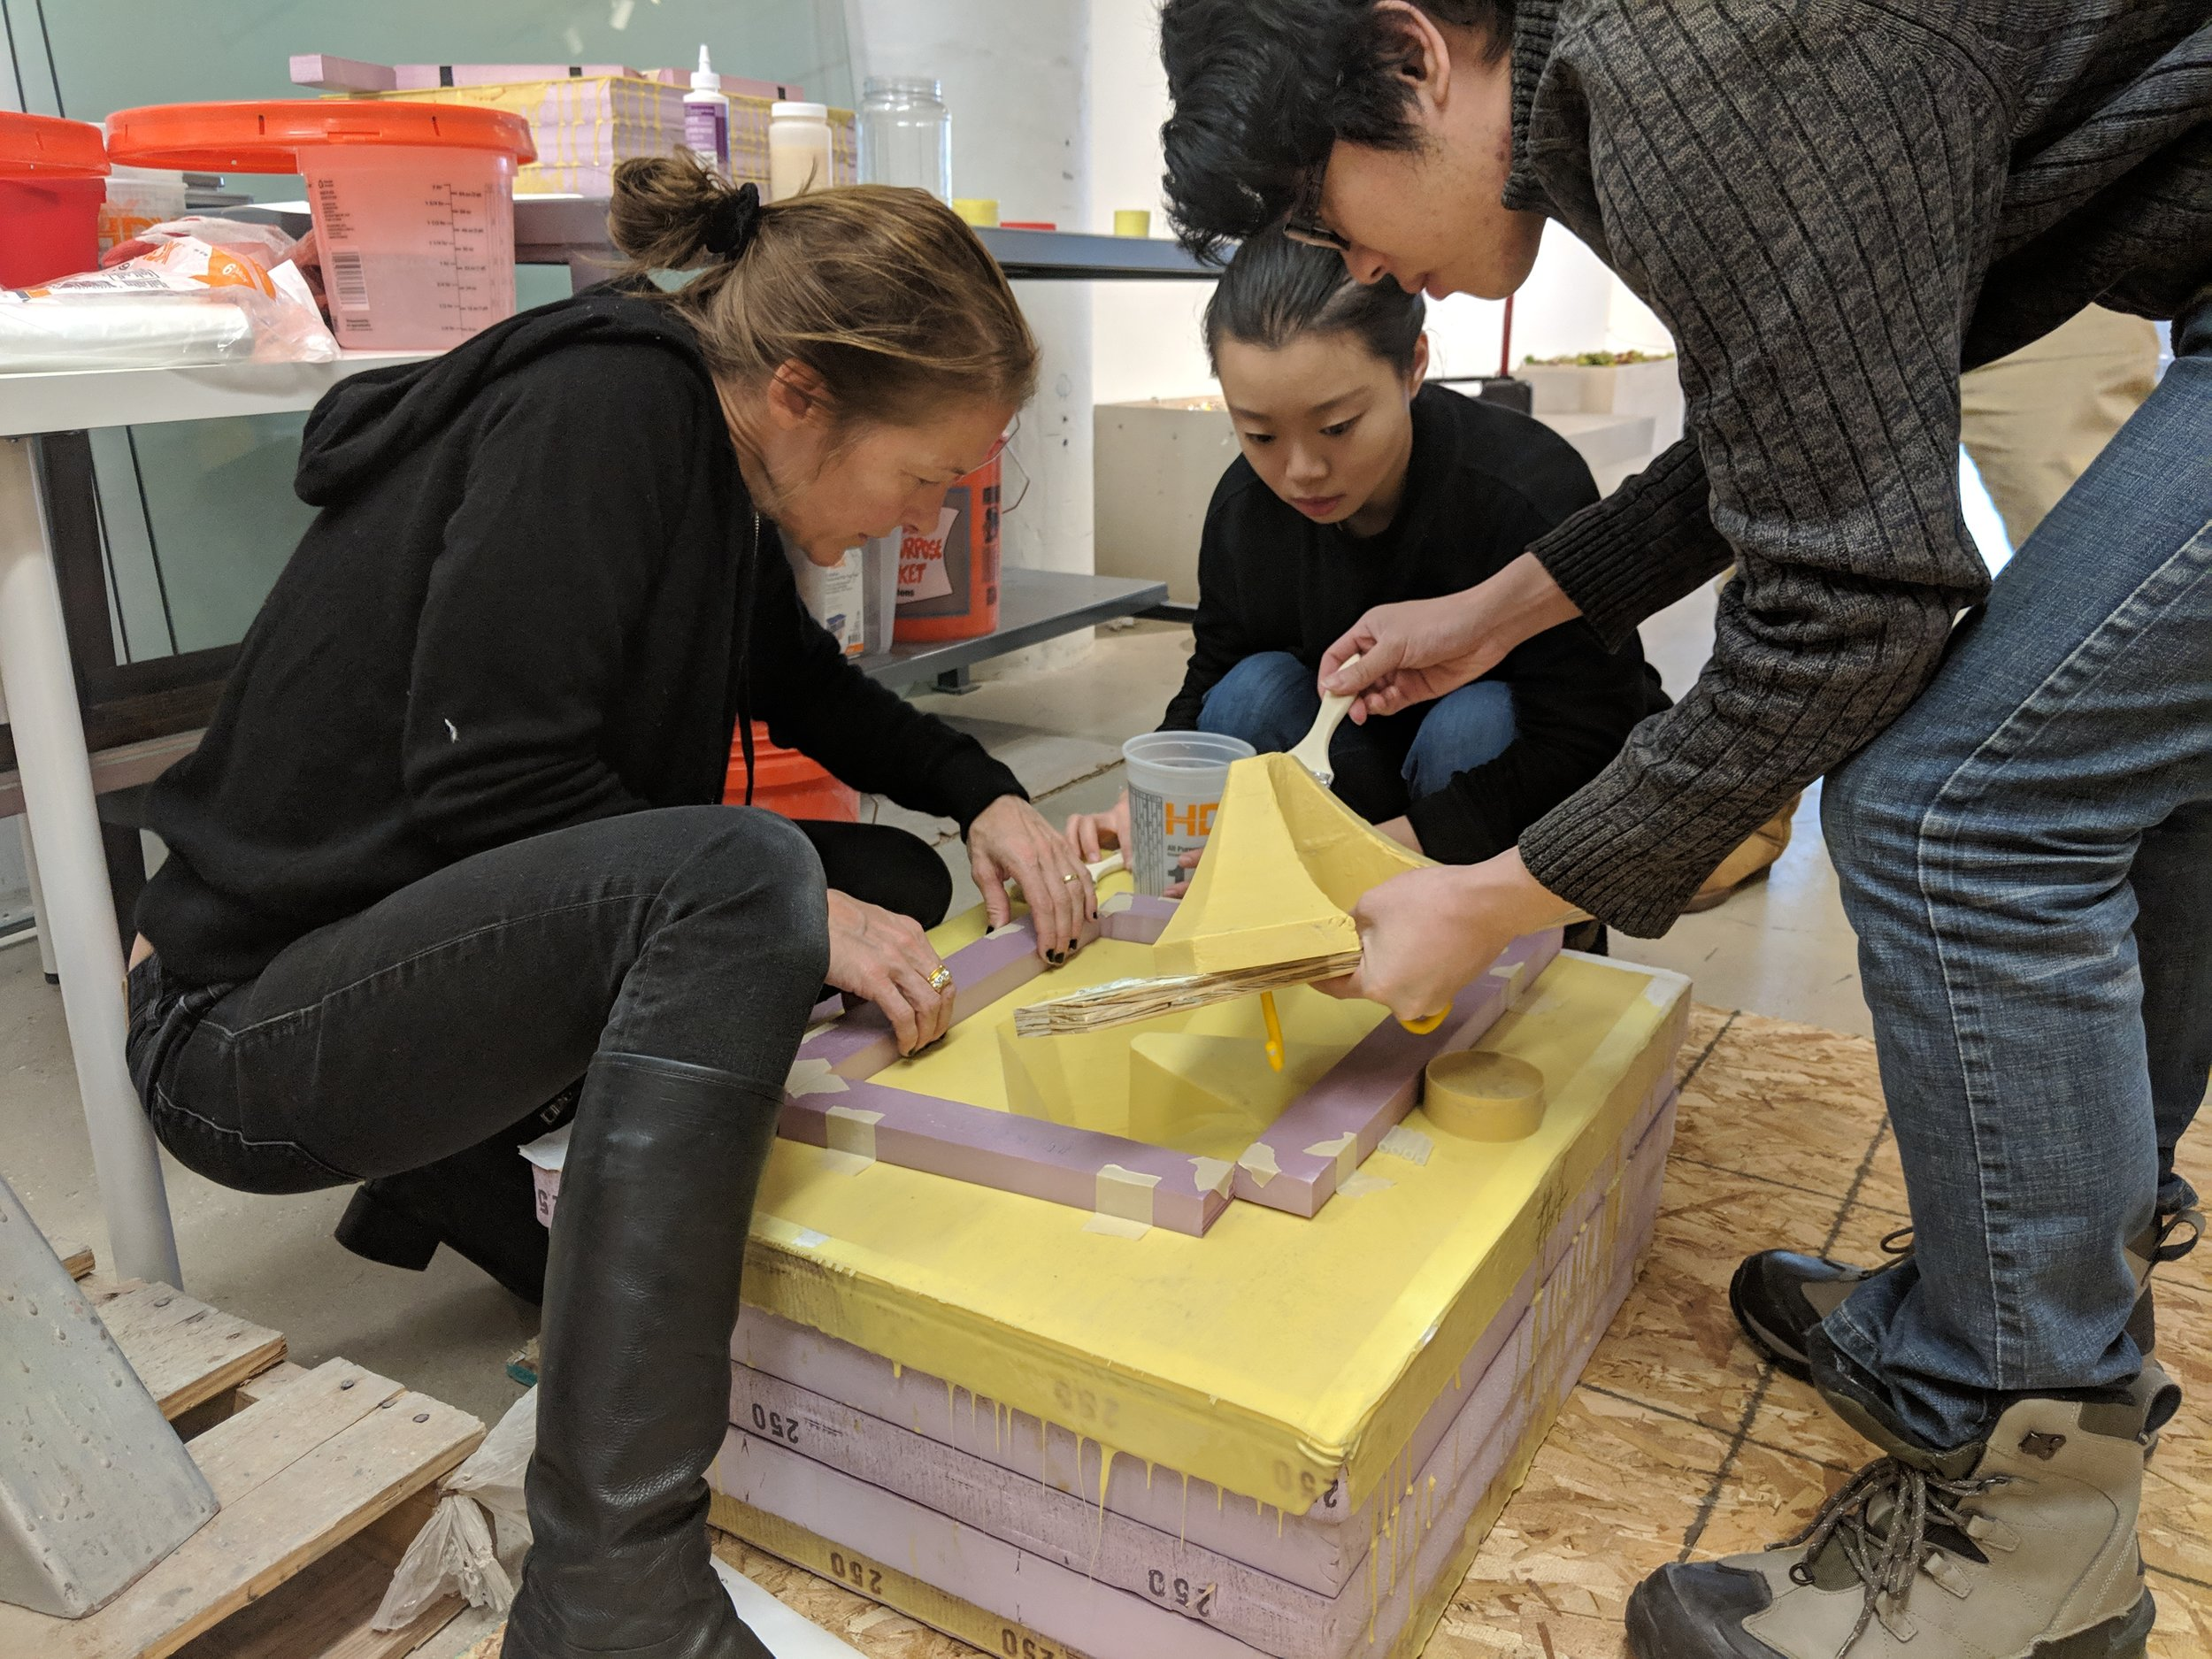 Panel Casting at Ductal Workshop, Brooklyn Navy Yard